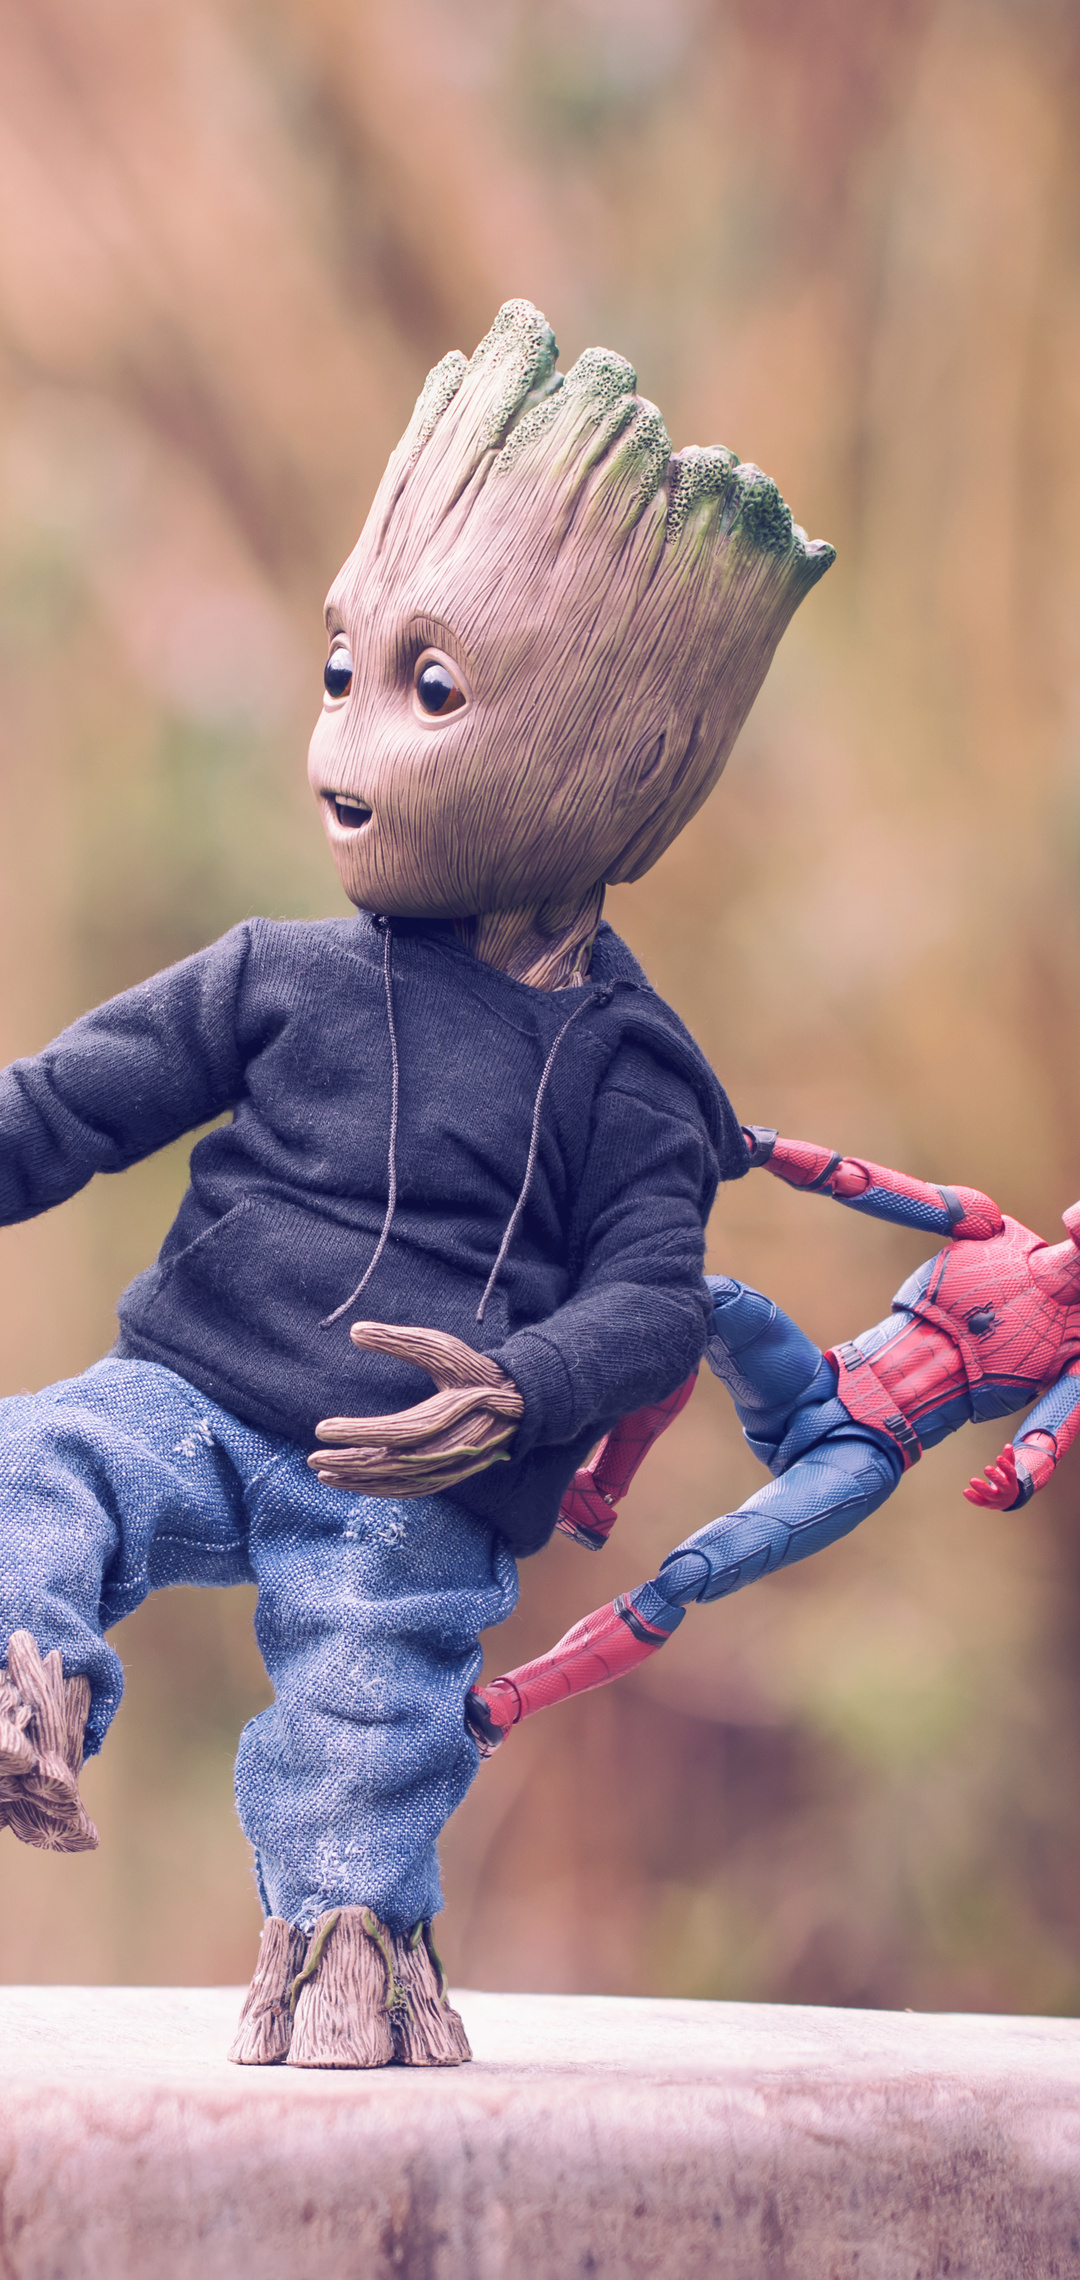 baby-groot-iron-man-and-spiderman-xs.jpg